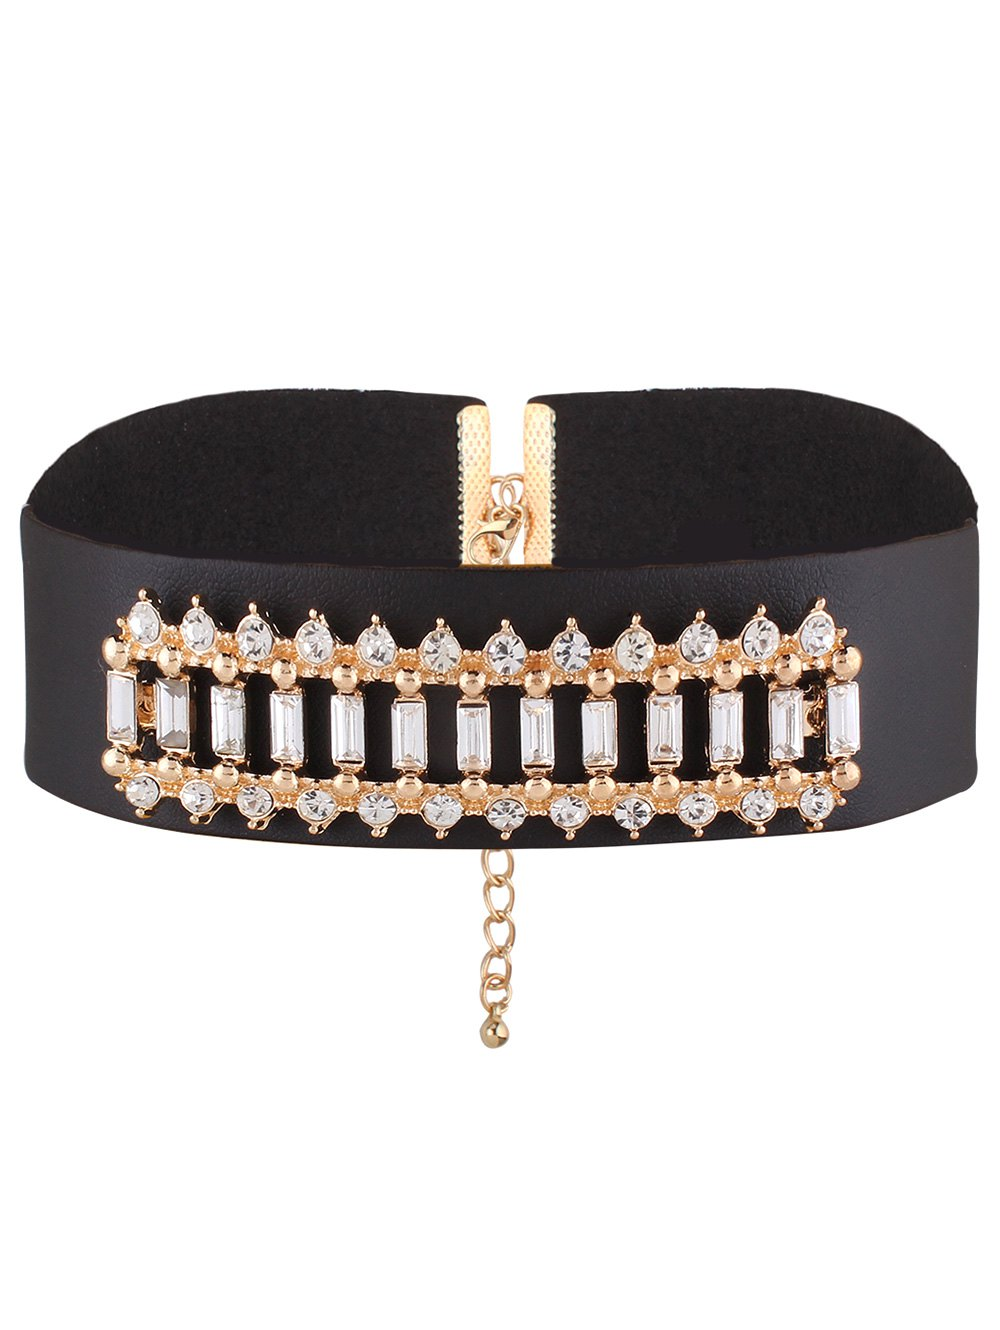 PU Leather Rhinestone Choker Necklace